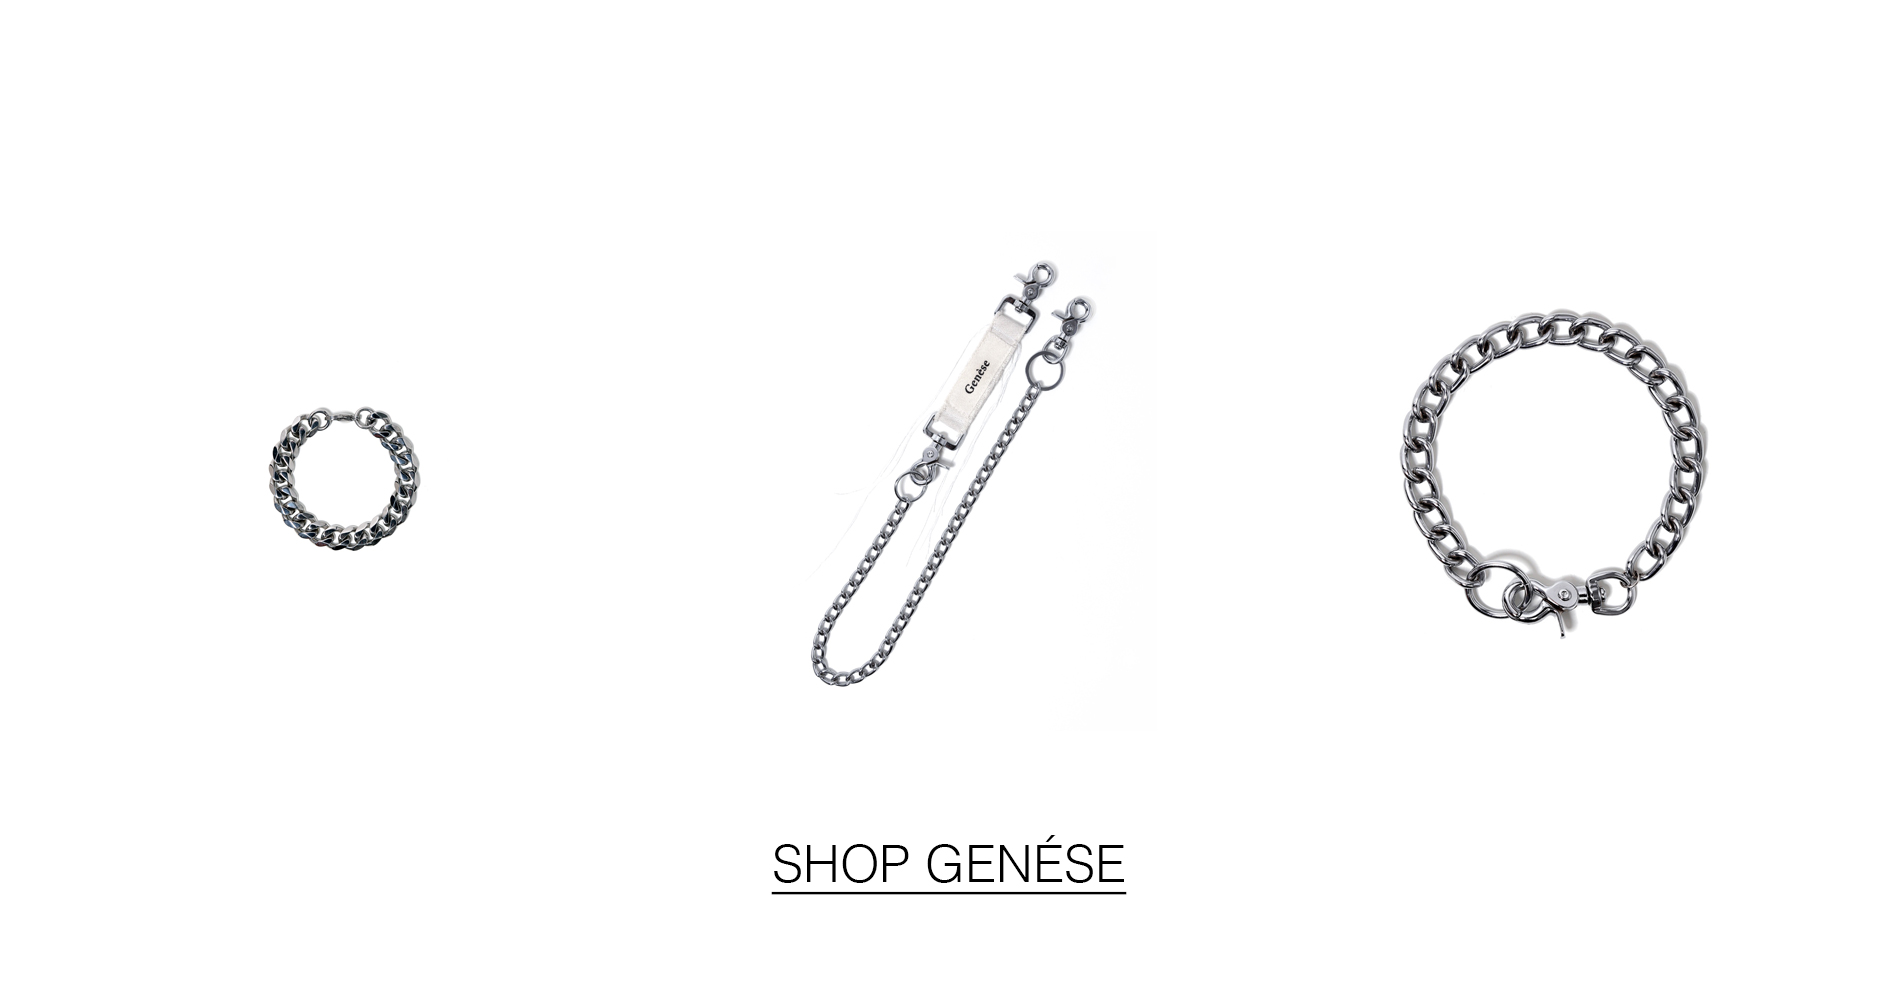 https://shatle.com/sk/products/brand/16/genese